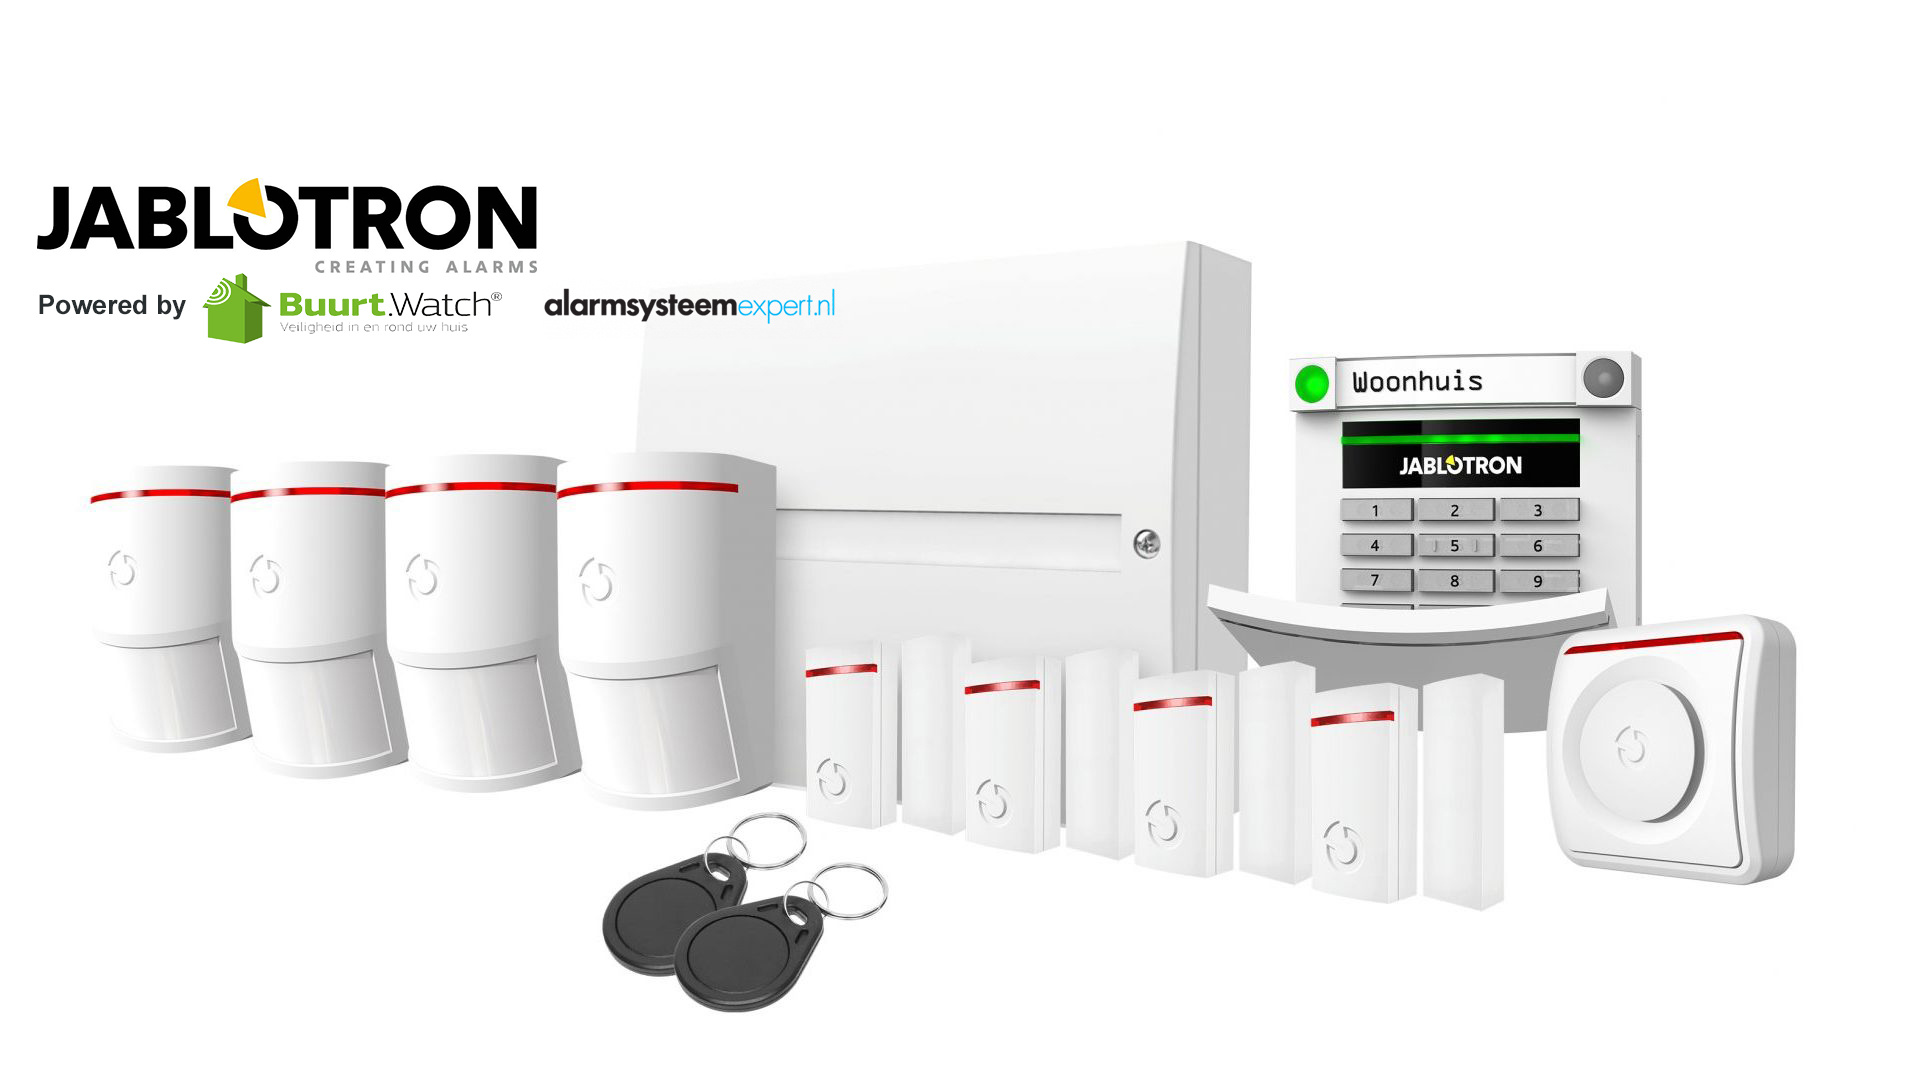 Very comprehensive basic kit for complete security. This kit consists of: 1 x JA-101KR-LAN / GSM center 4 x JA-150P motion detector 4 x JA-151M mini magnetic contact 1 x JA-110A indoor siren 1 x JA-113E code control panel 2 x PC-02B RFID tag 1 x battery s